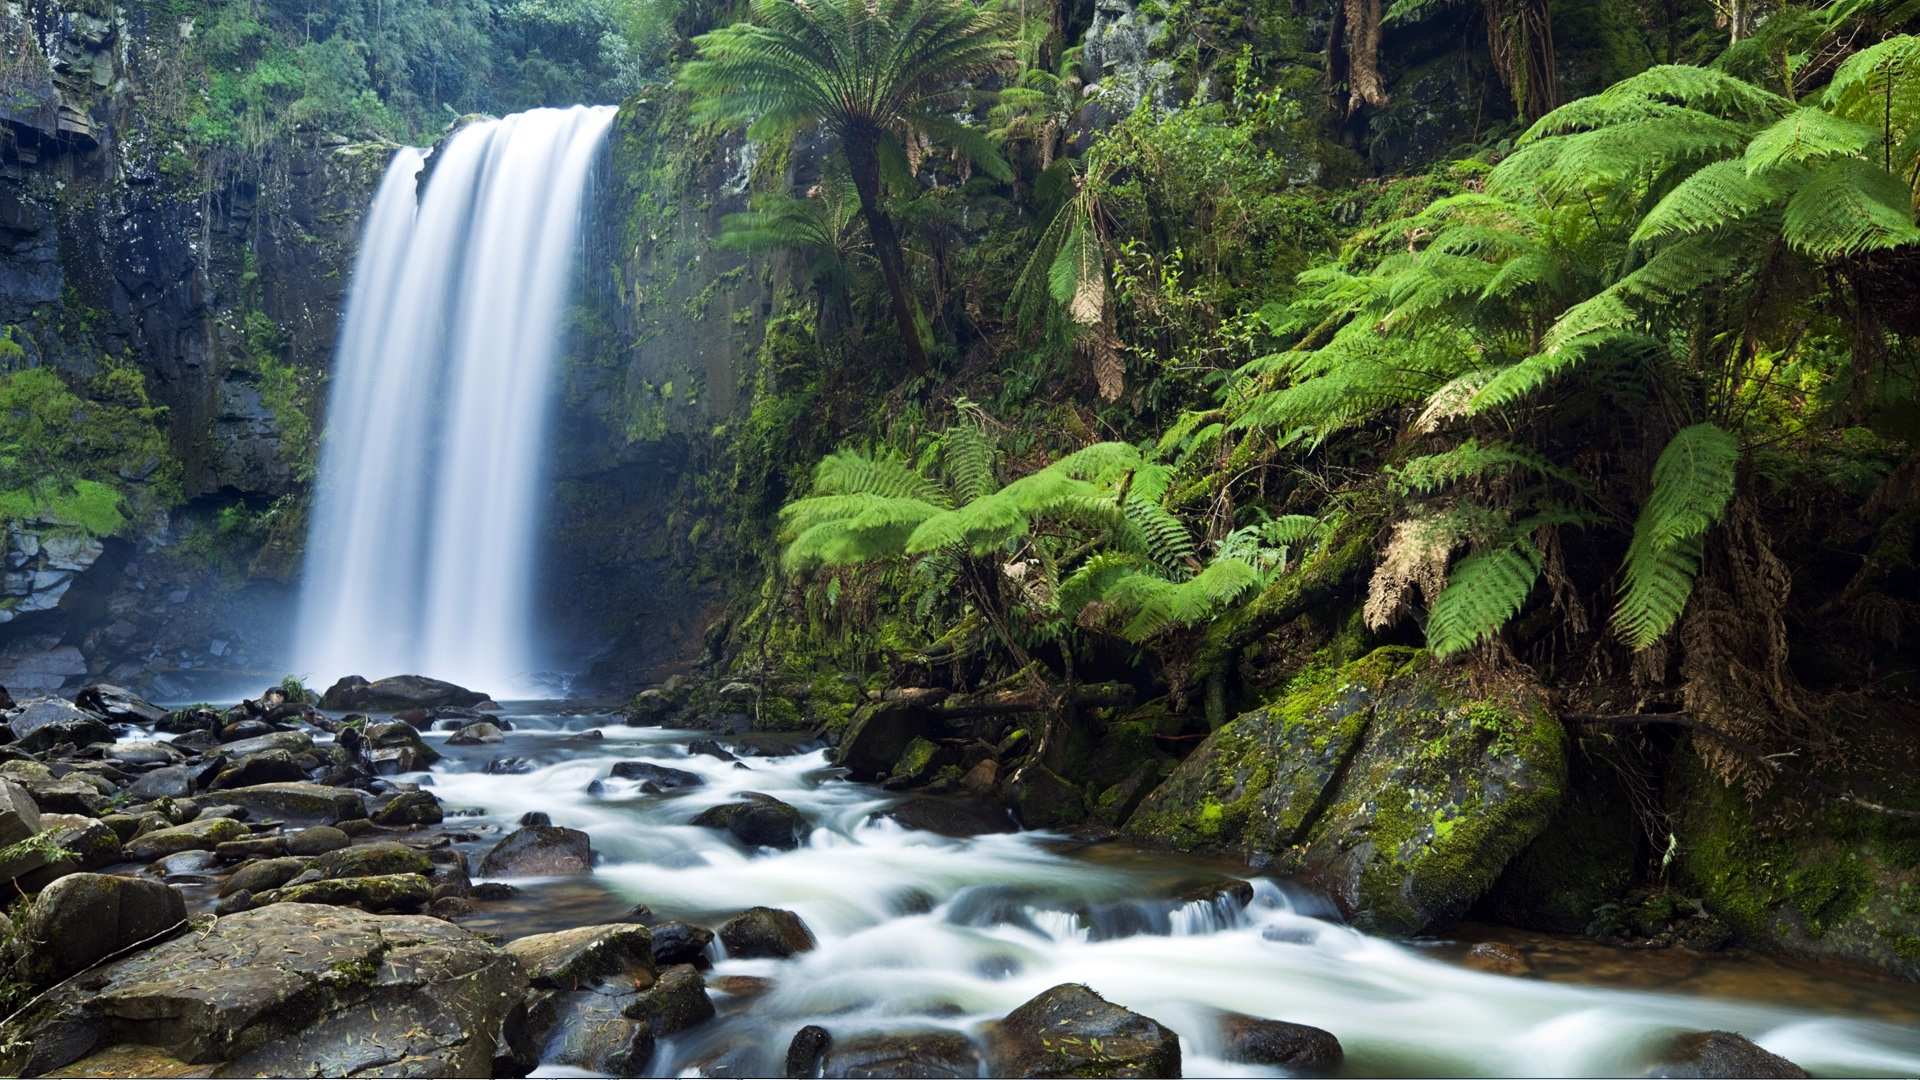 download waterfalls rocks or candlelight themes to personalize